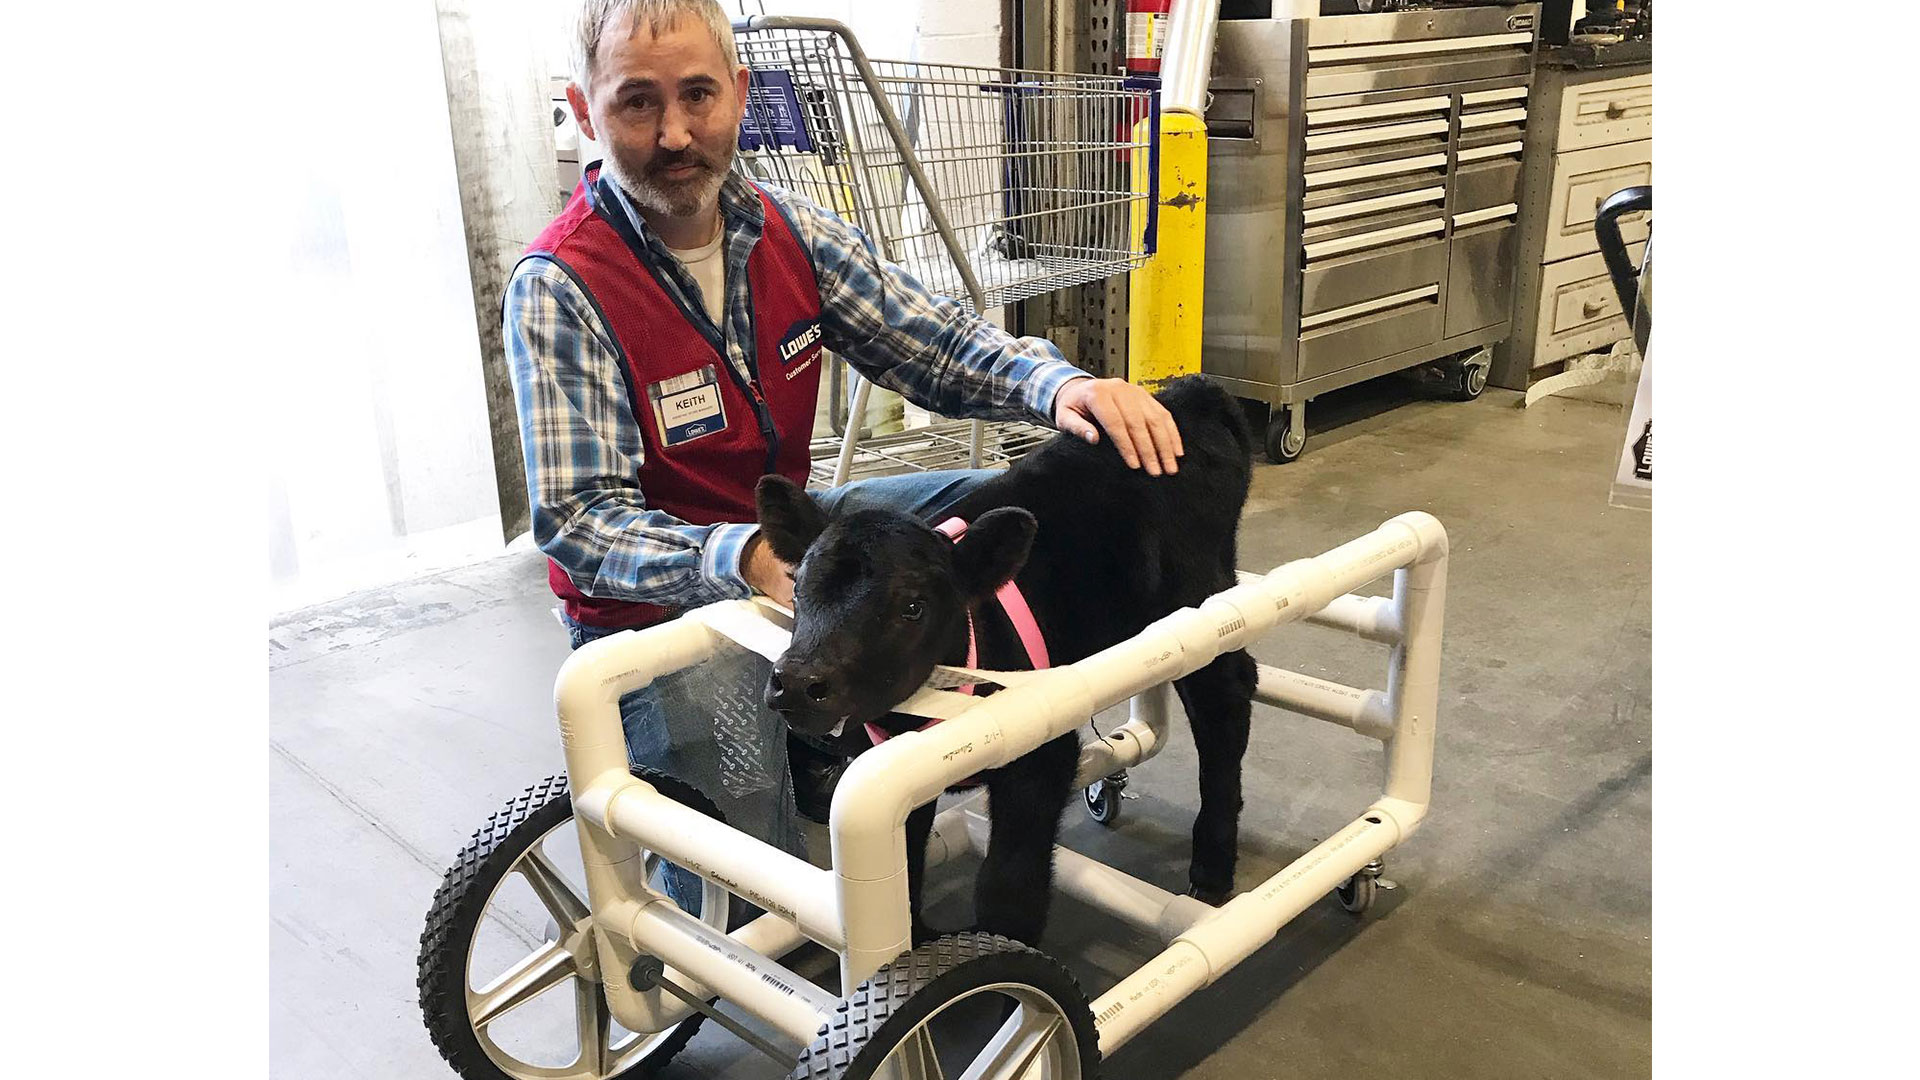 North Carolina Lowe's Employee Builds Wheelchair for Injured Calf